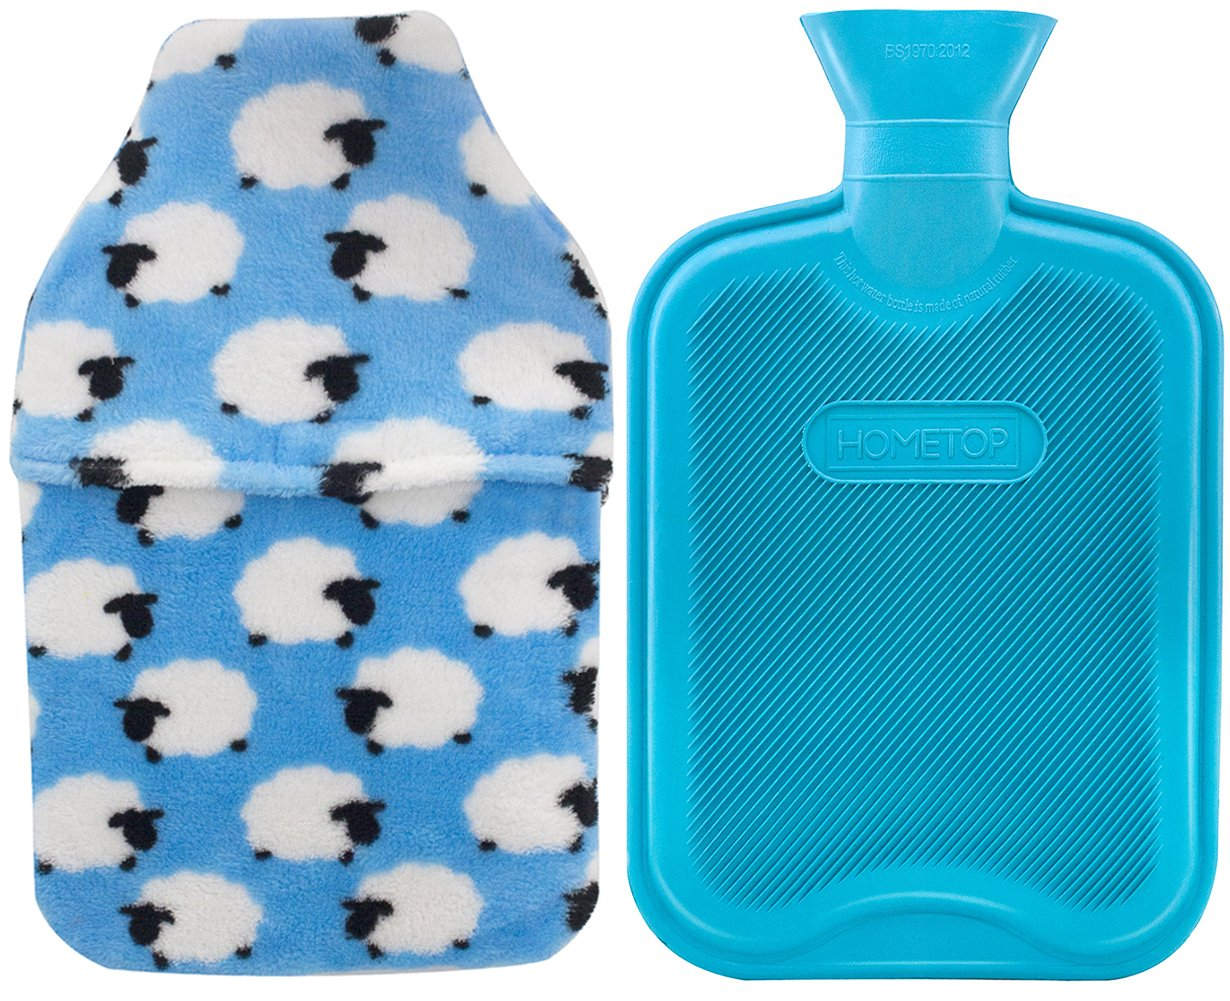 HomeTop Premium Classic Rubber Hot or Cold Water Bottle with Soft Fleece Cover (2 Liters, Blue/Blue Sheep Envelope Cover)